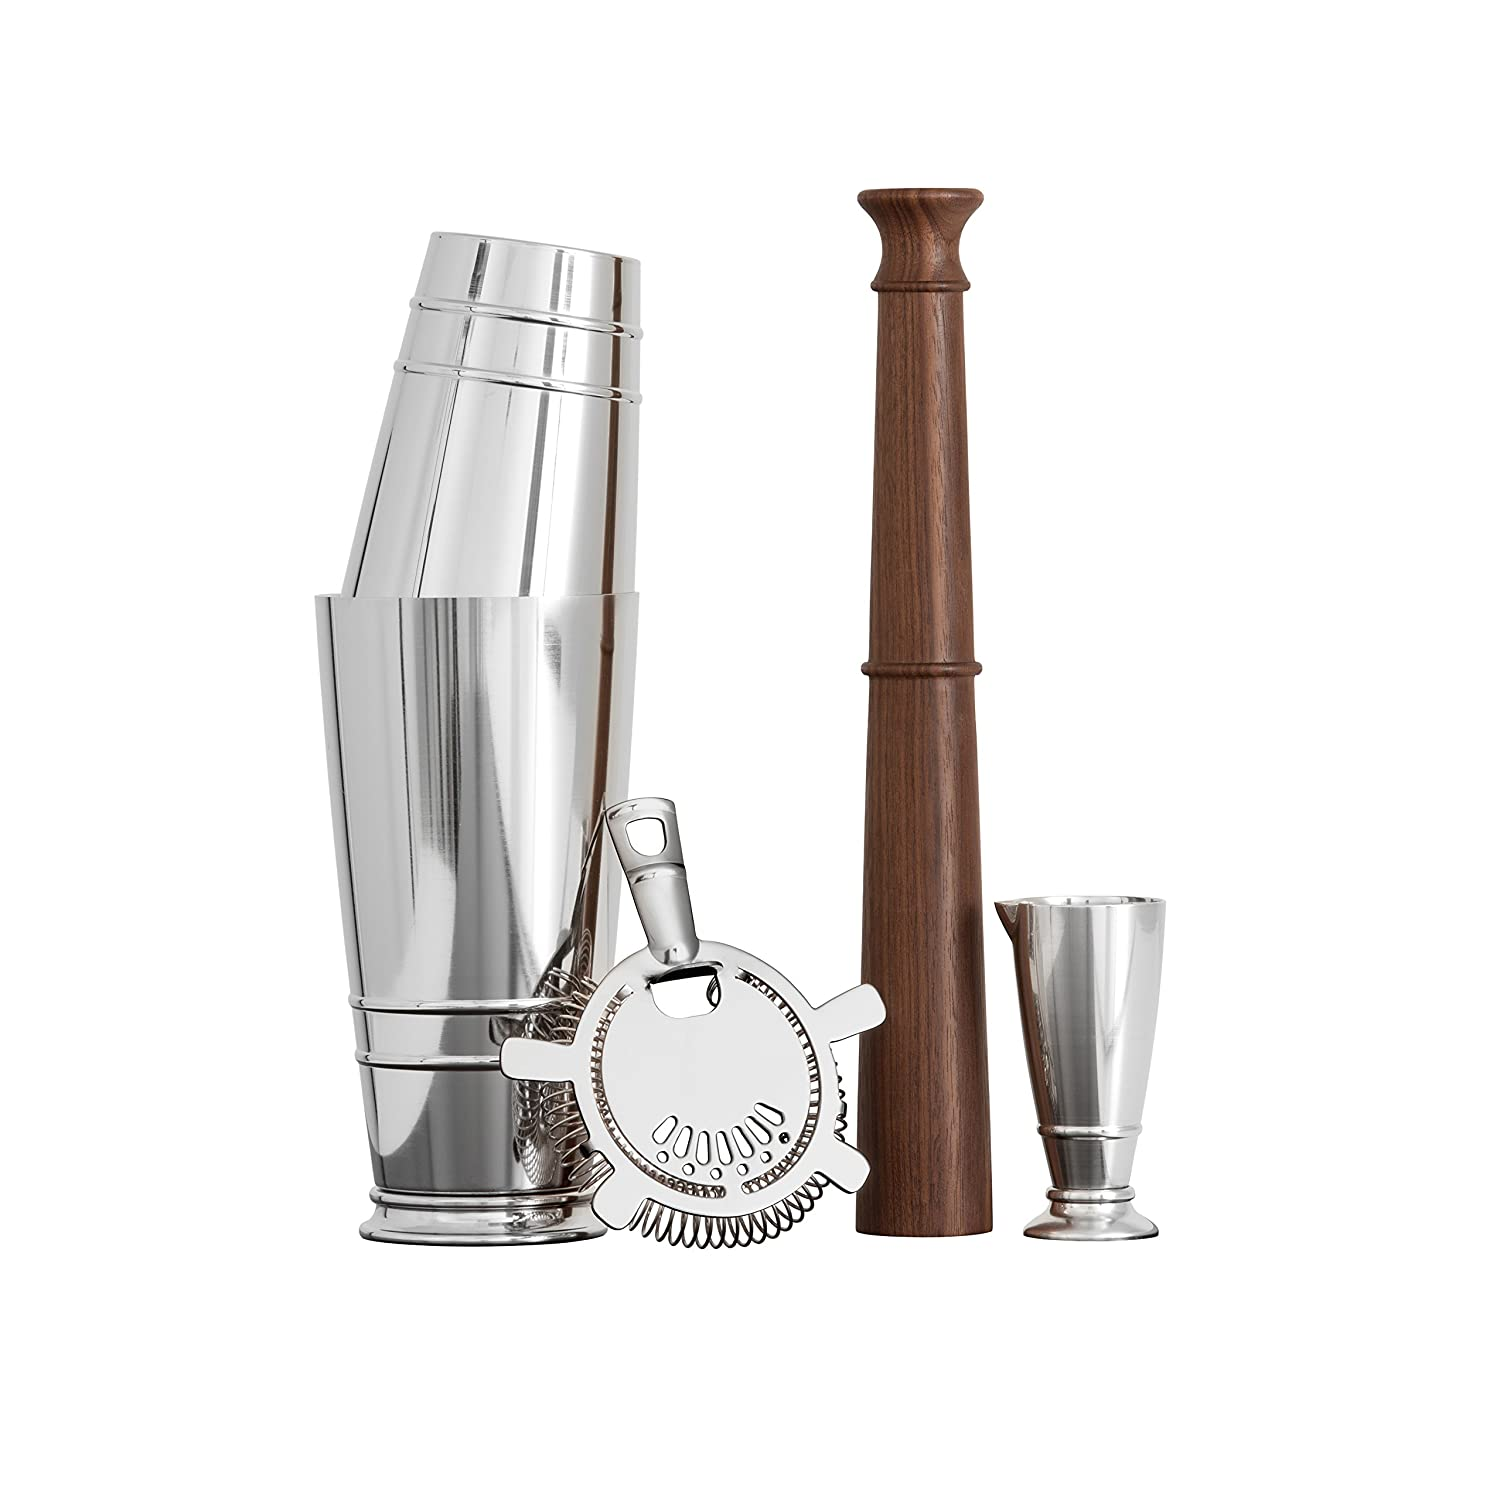 Silver CRFTHS.MIXINGST Mixing Gift Set Crafthouse by Fortessa Professional Barware//Bar Tools by Charles Joly